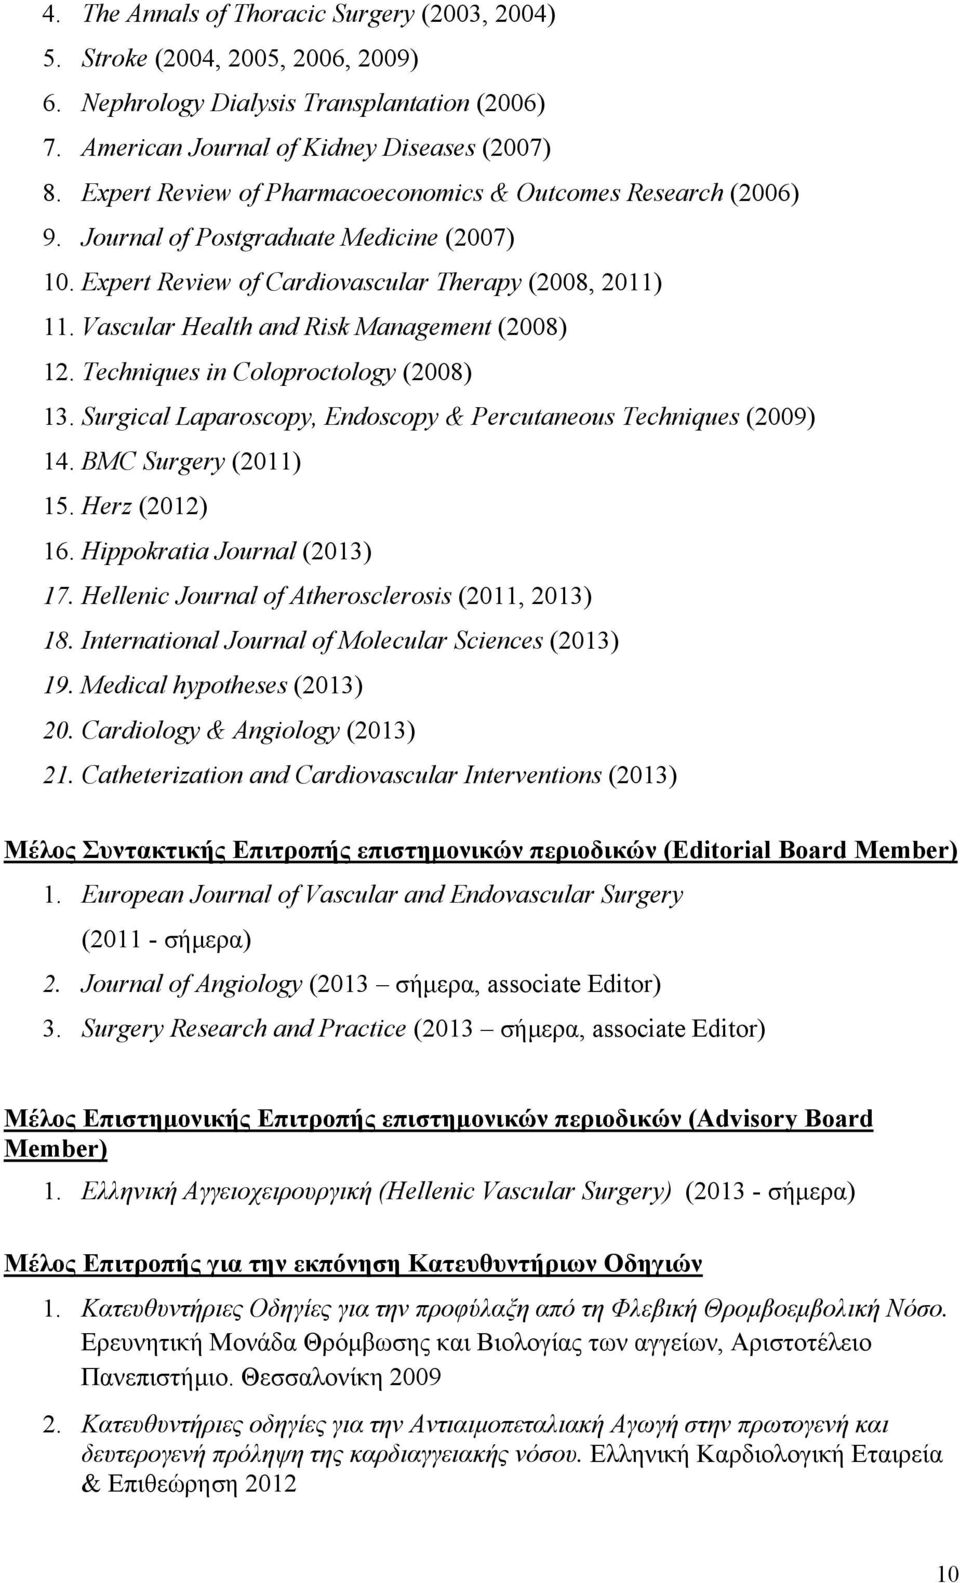 Vascular Health and Risk Management (2008) 12. Techniques in Coloproctology (2008) 13. Surgical Laparoscopy, Endoscopy & Percutaneous Techniques (2009) 14. BMC Surgery (2011) 15. Herz (2012) 16.